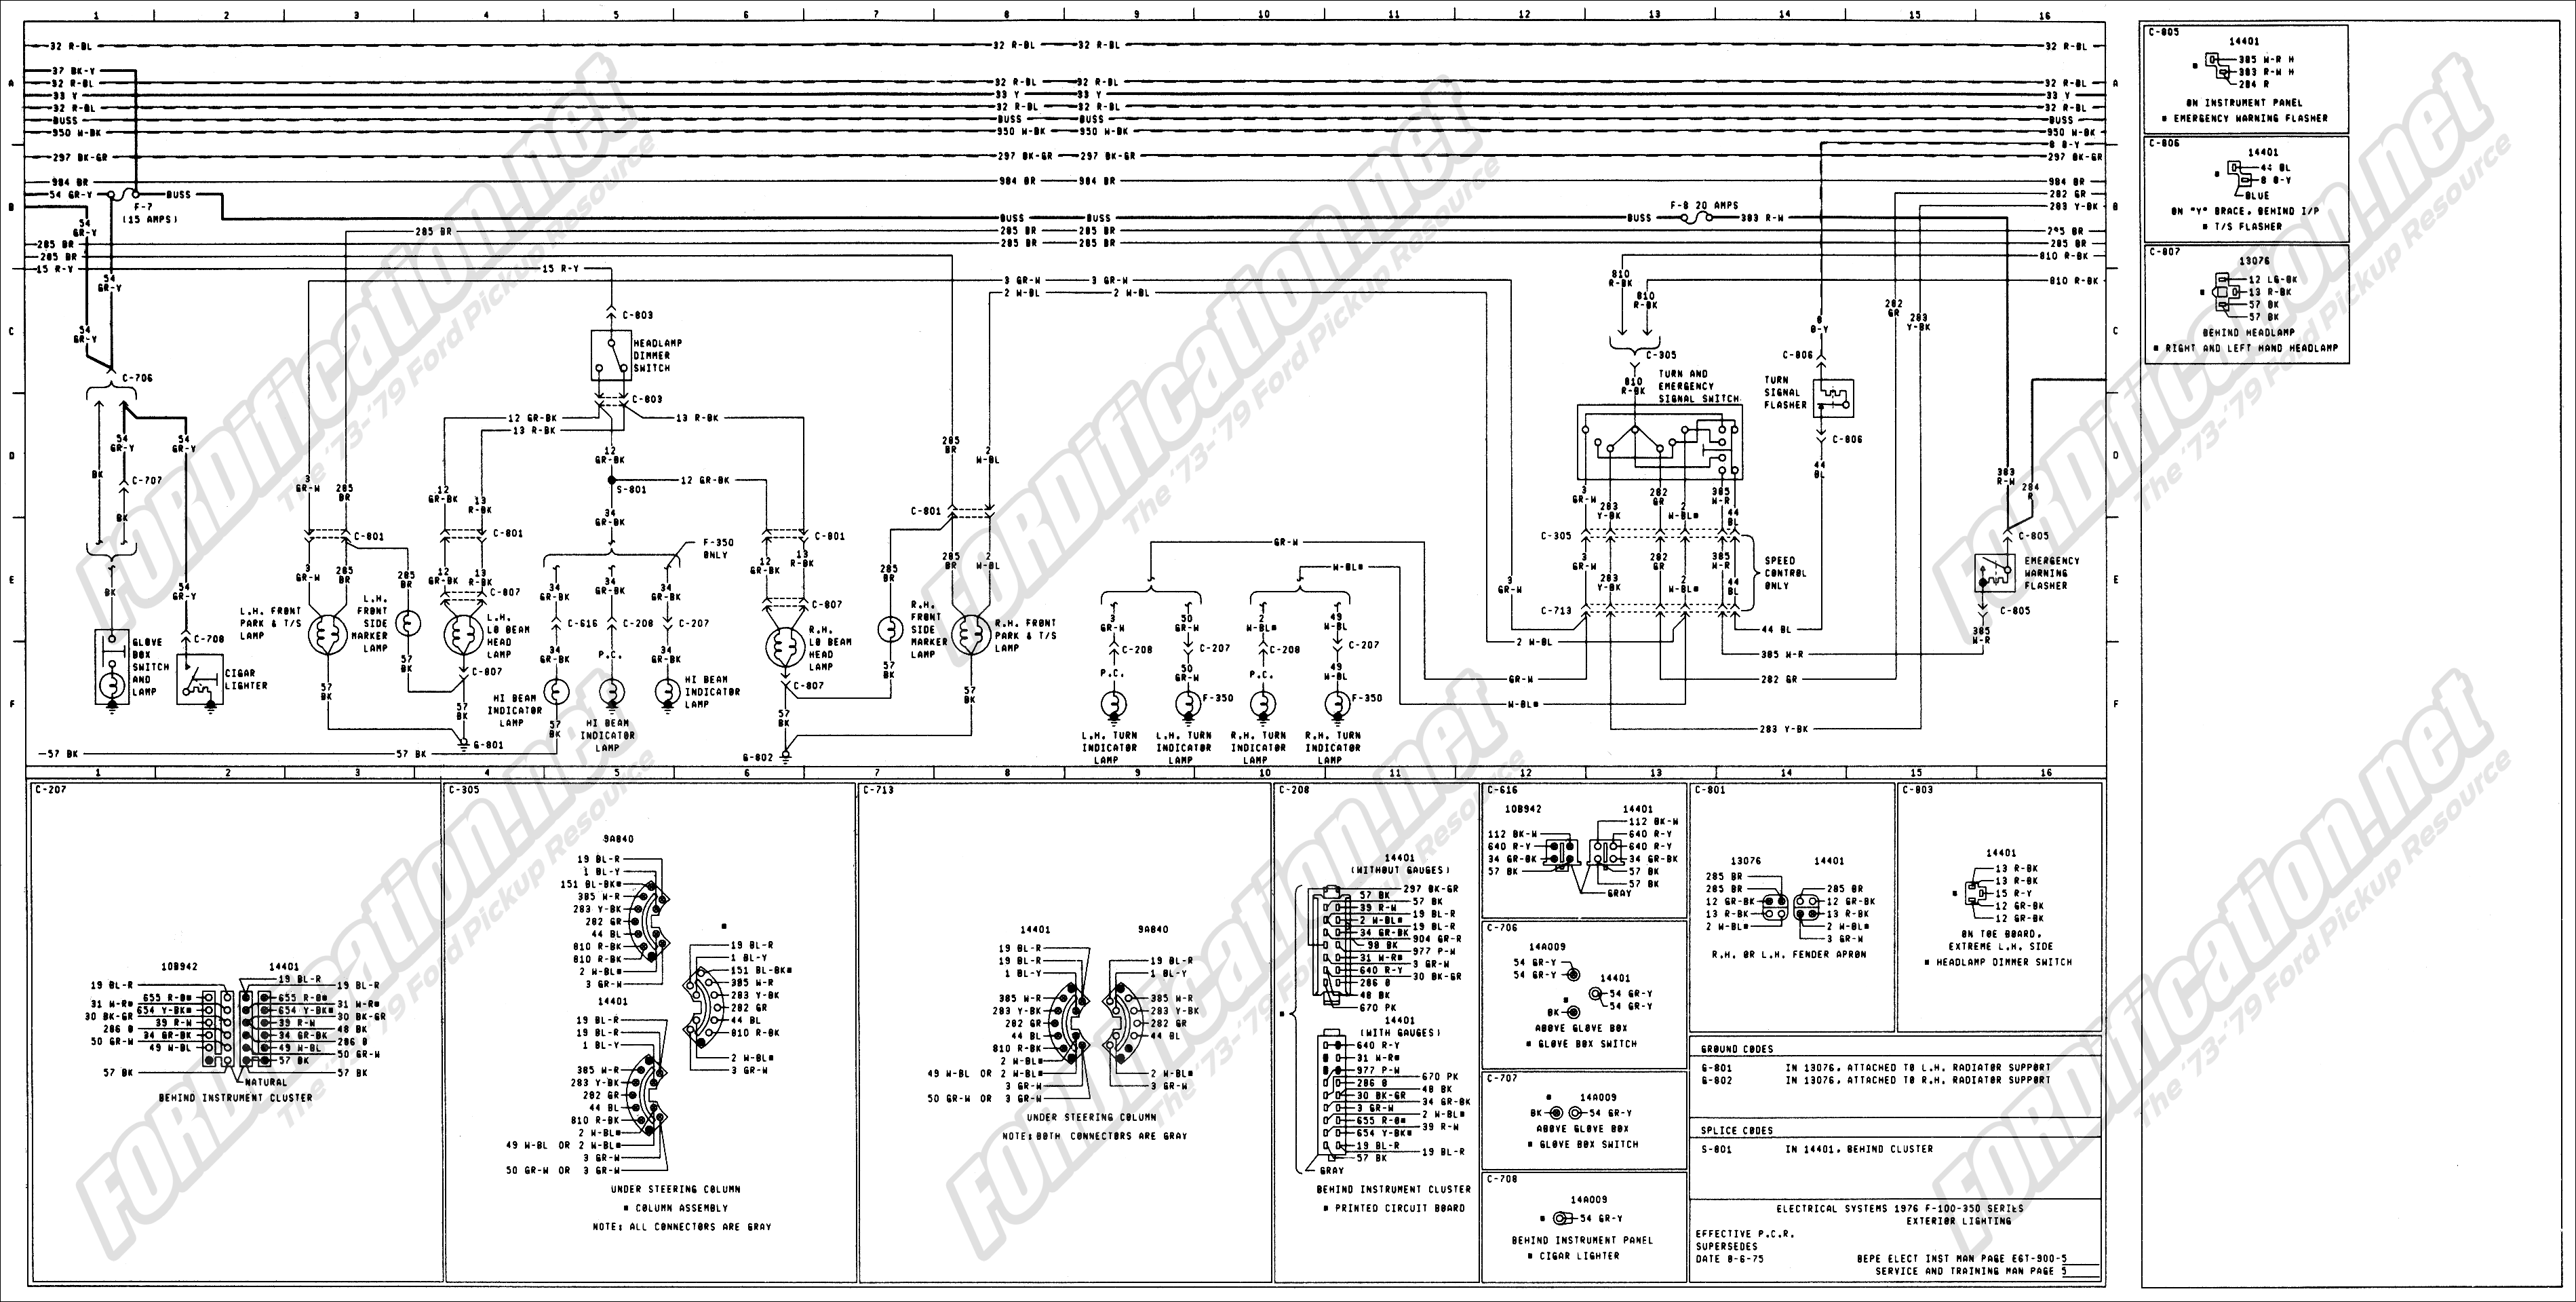 1979 ford wiring diagram data wiring diagram76 ford wiring diagram free download wiring diagram schematic 1967 ford wiring diagram 1979 ford wiring diagram